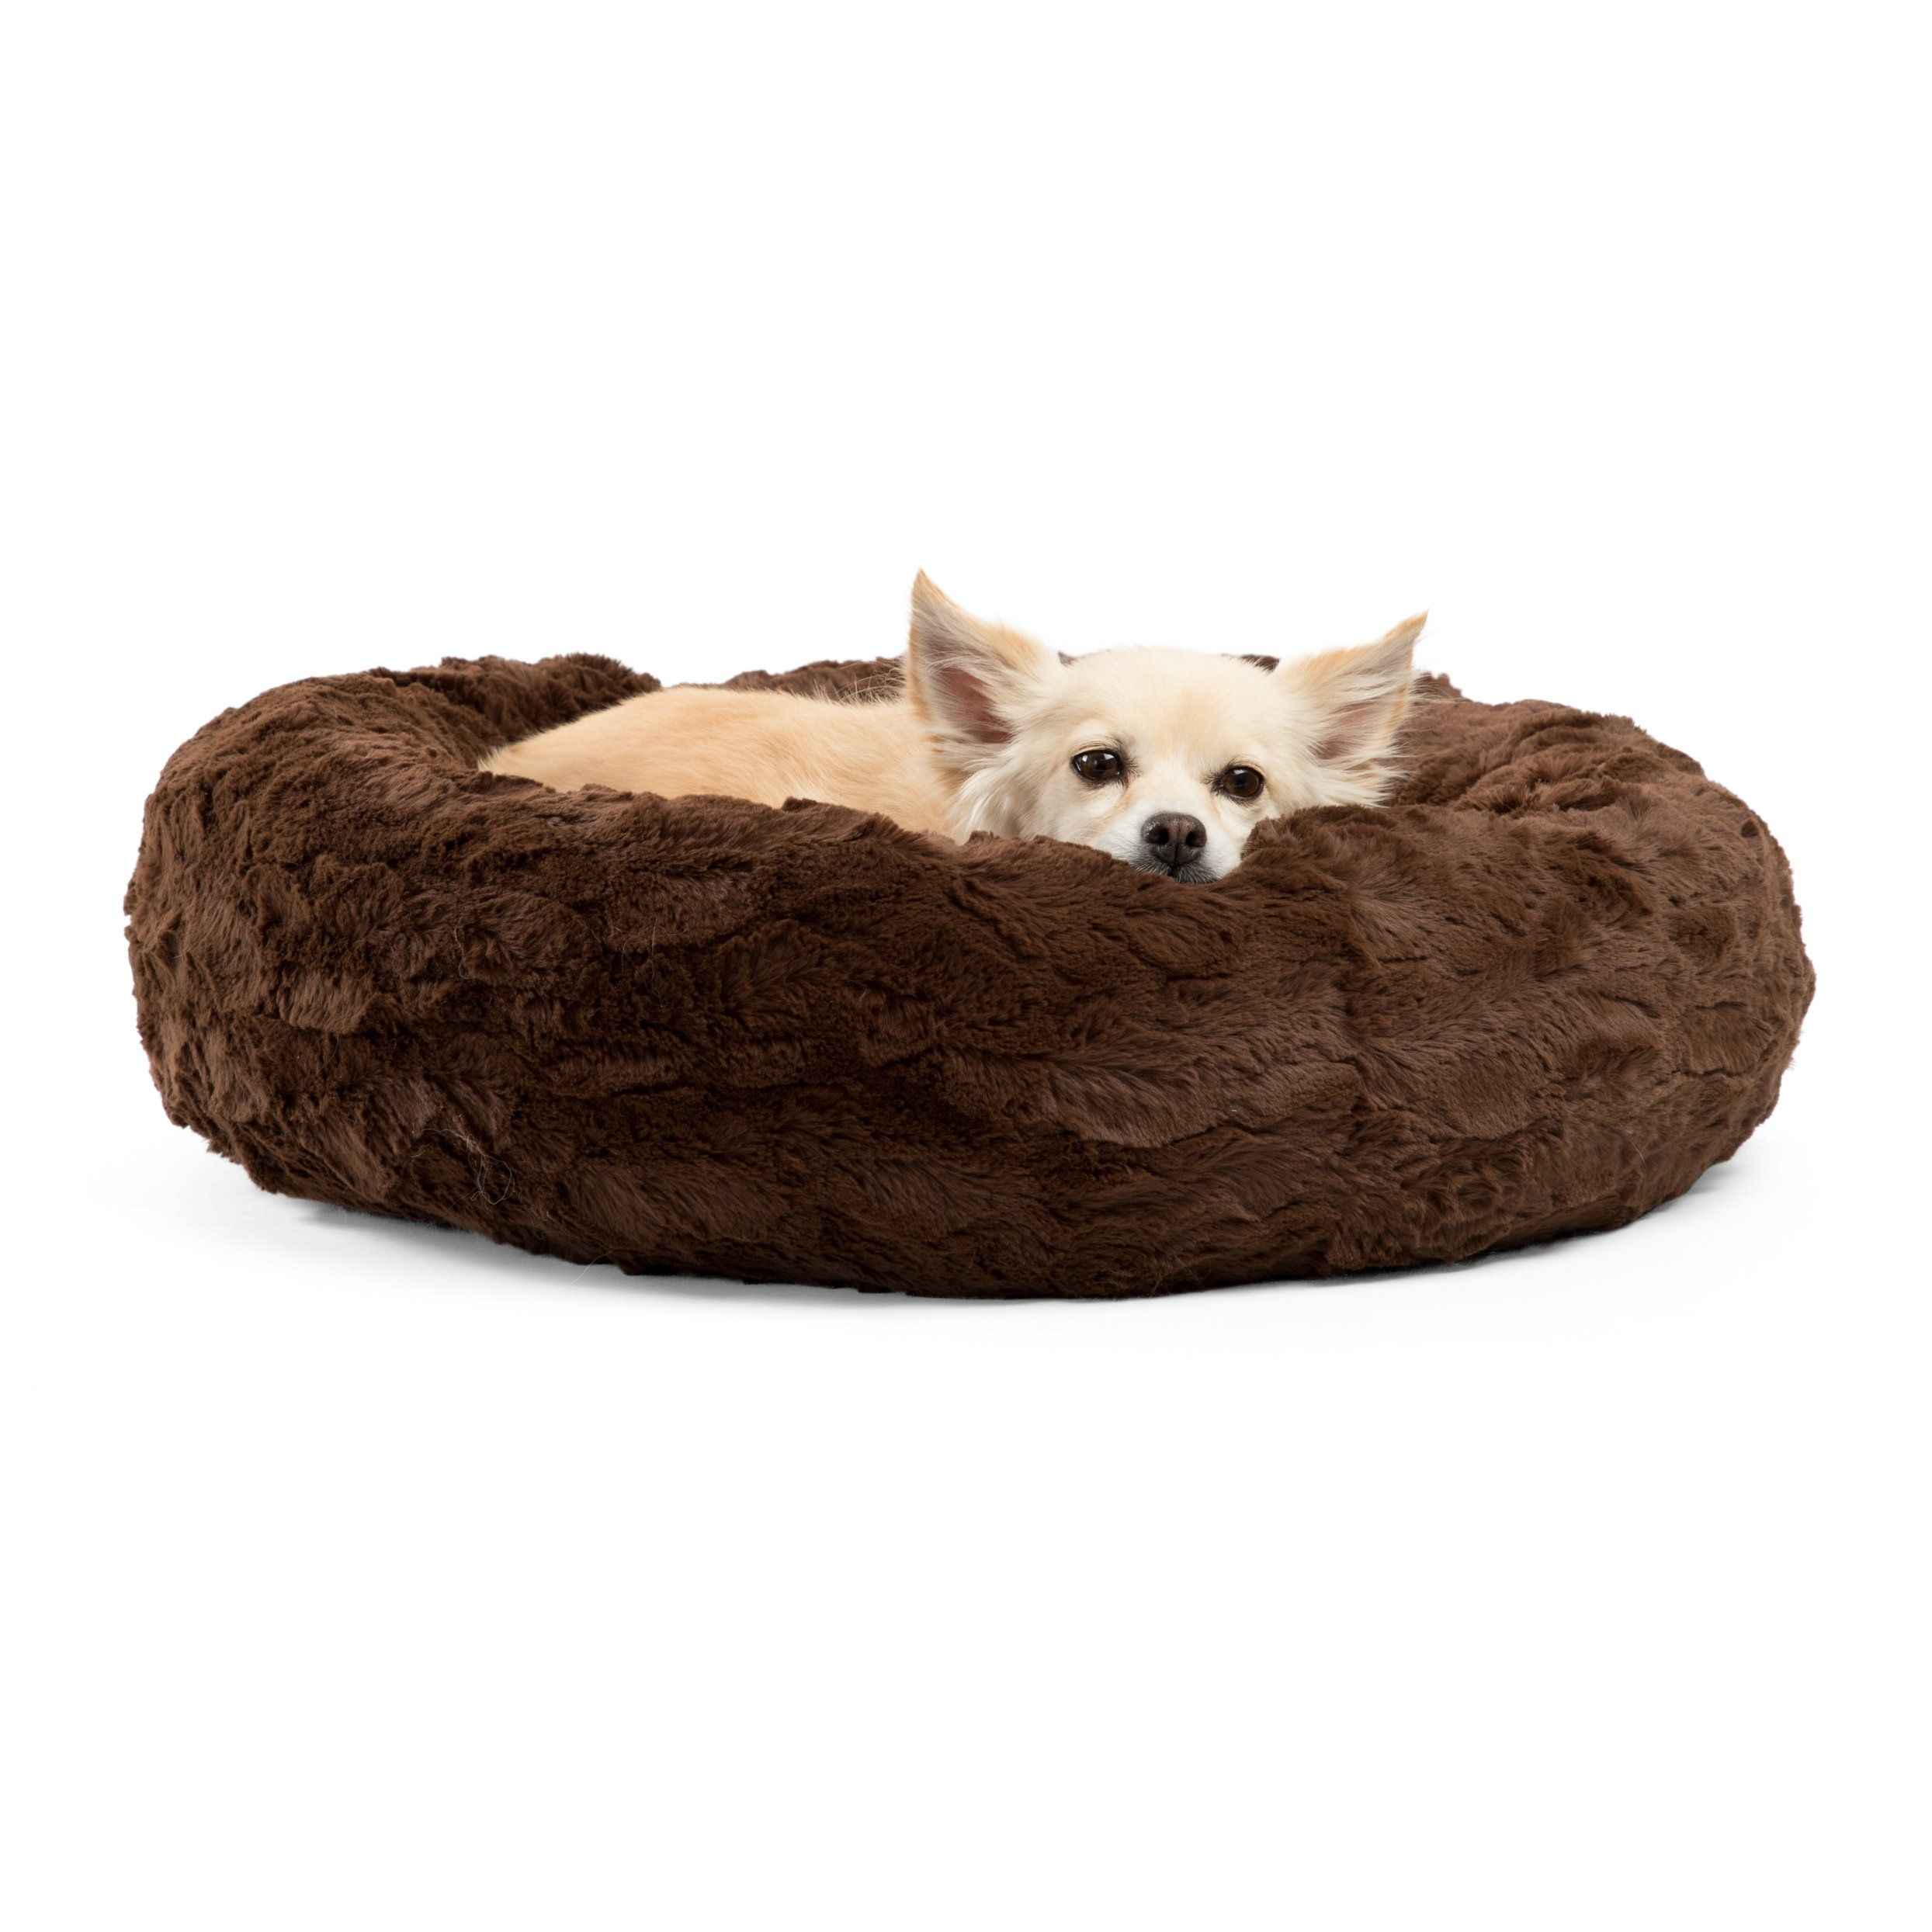 Best Friends By Sheri Luxury Faux Fur Donut Cuddler 23x23 Dark Chocolate Small Round Donut Cat And Dog Cushion Bed Ortho Dog Bed Cushion Donut Dog Bed Dog Bed